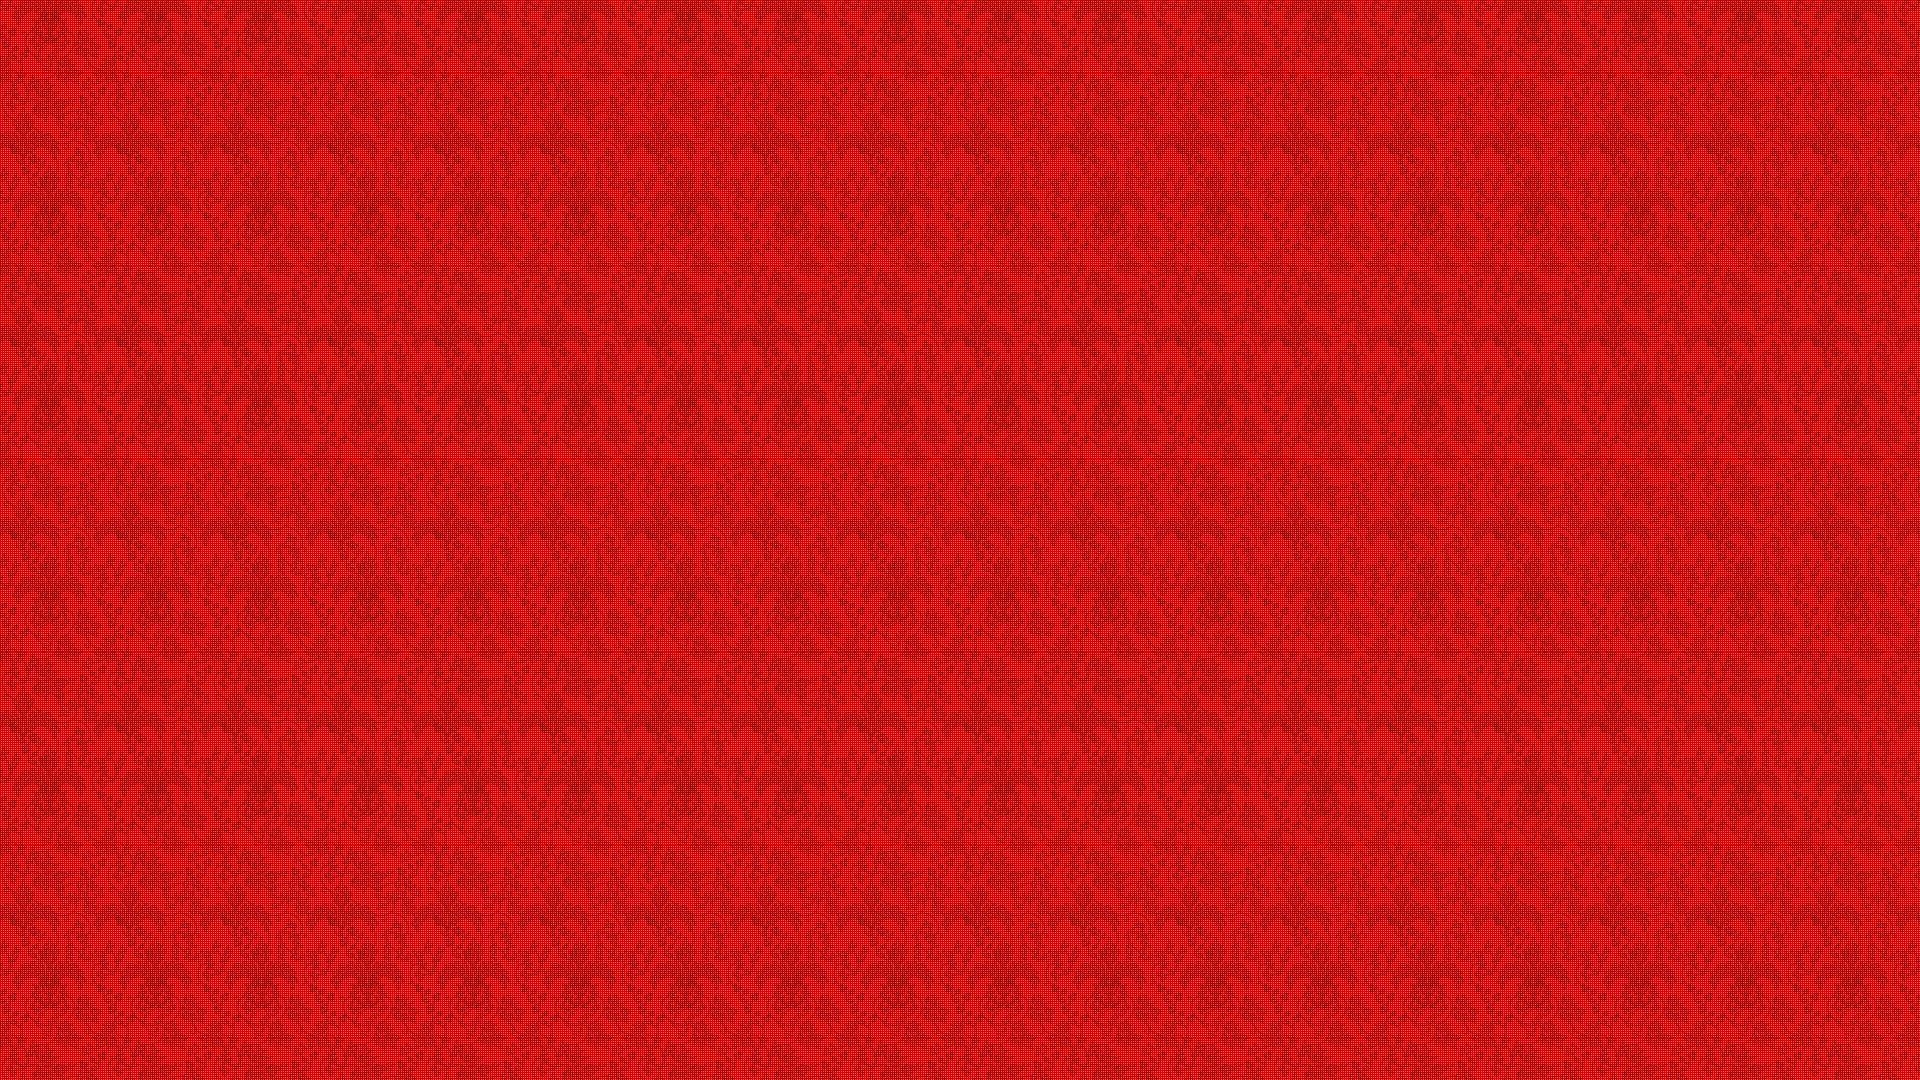 Seamless Red Floral Pattern Wallpaper